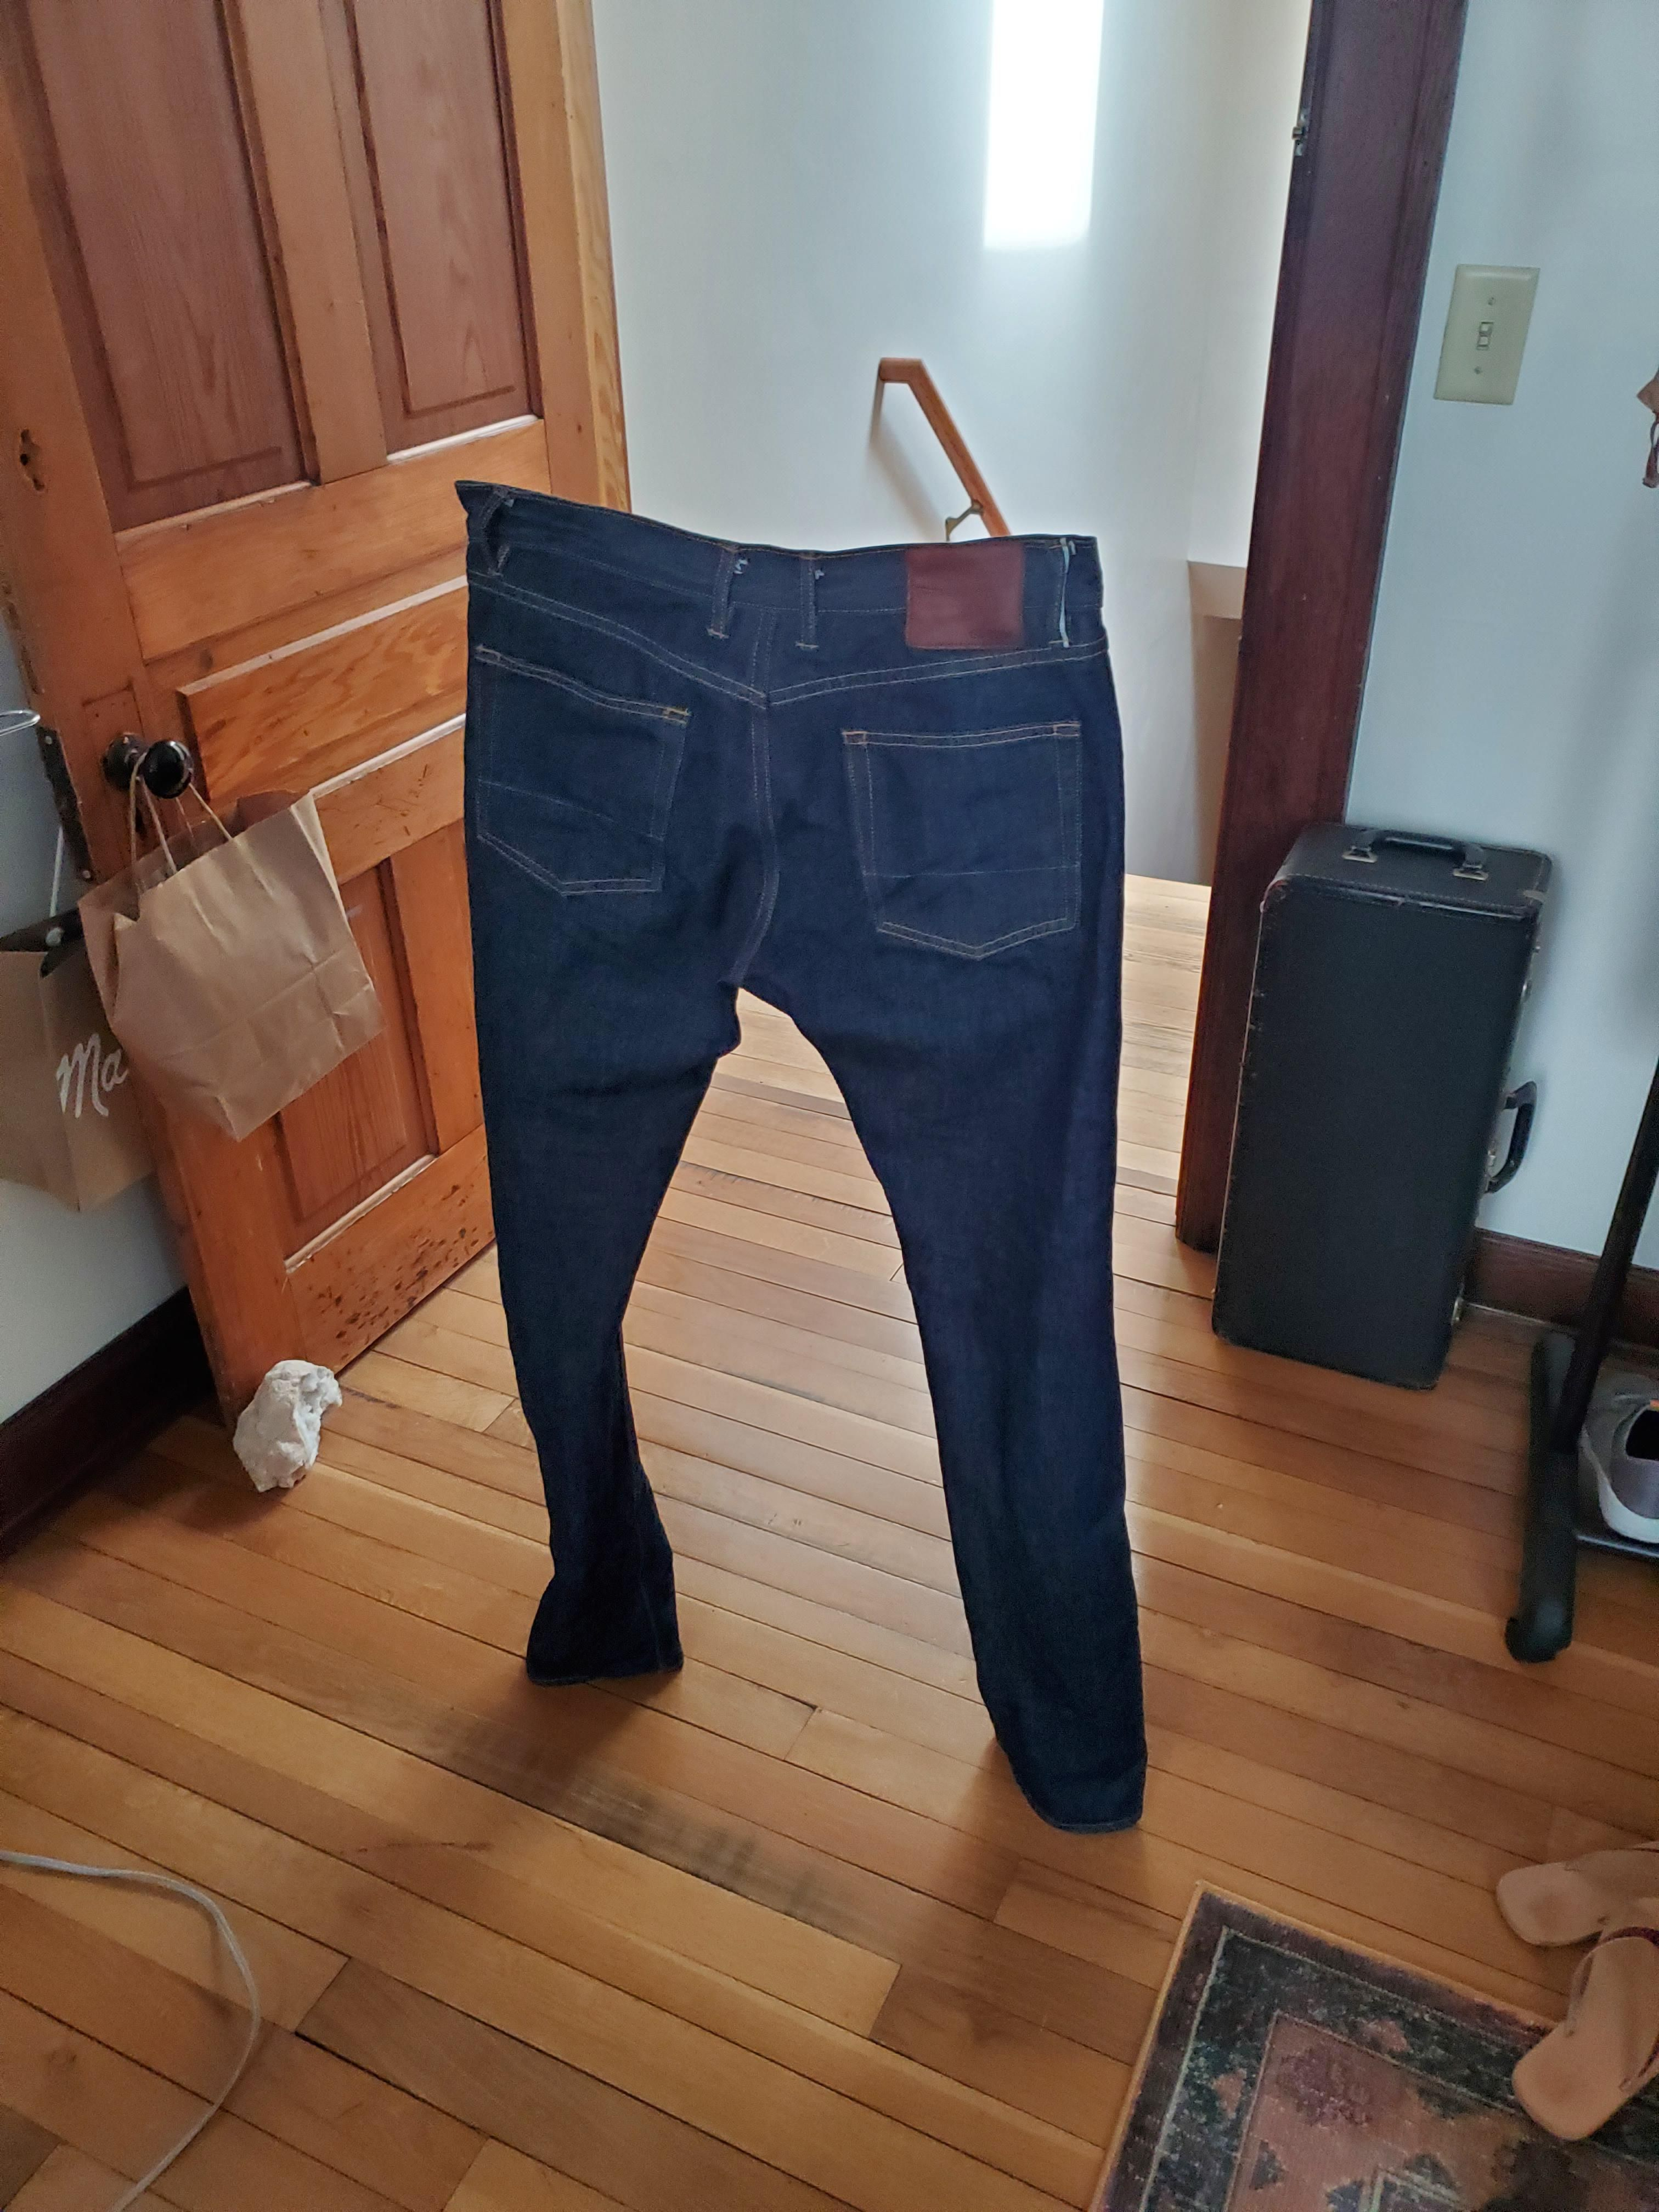 New pair of selvedge denim jeans. Ithink they still need to be broken in